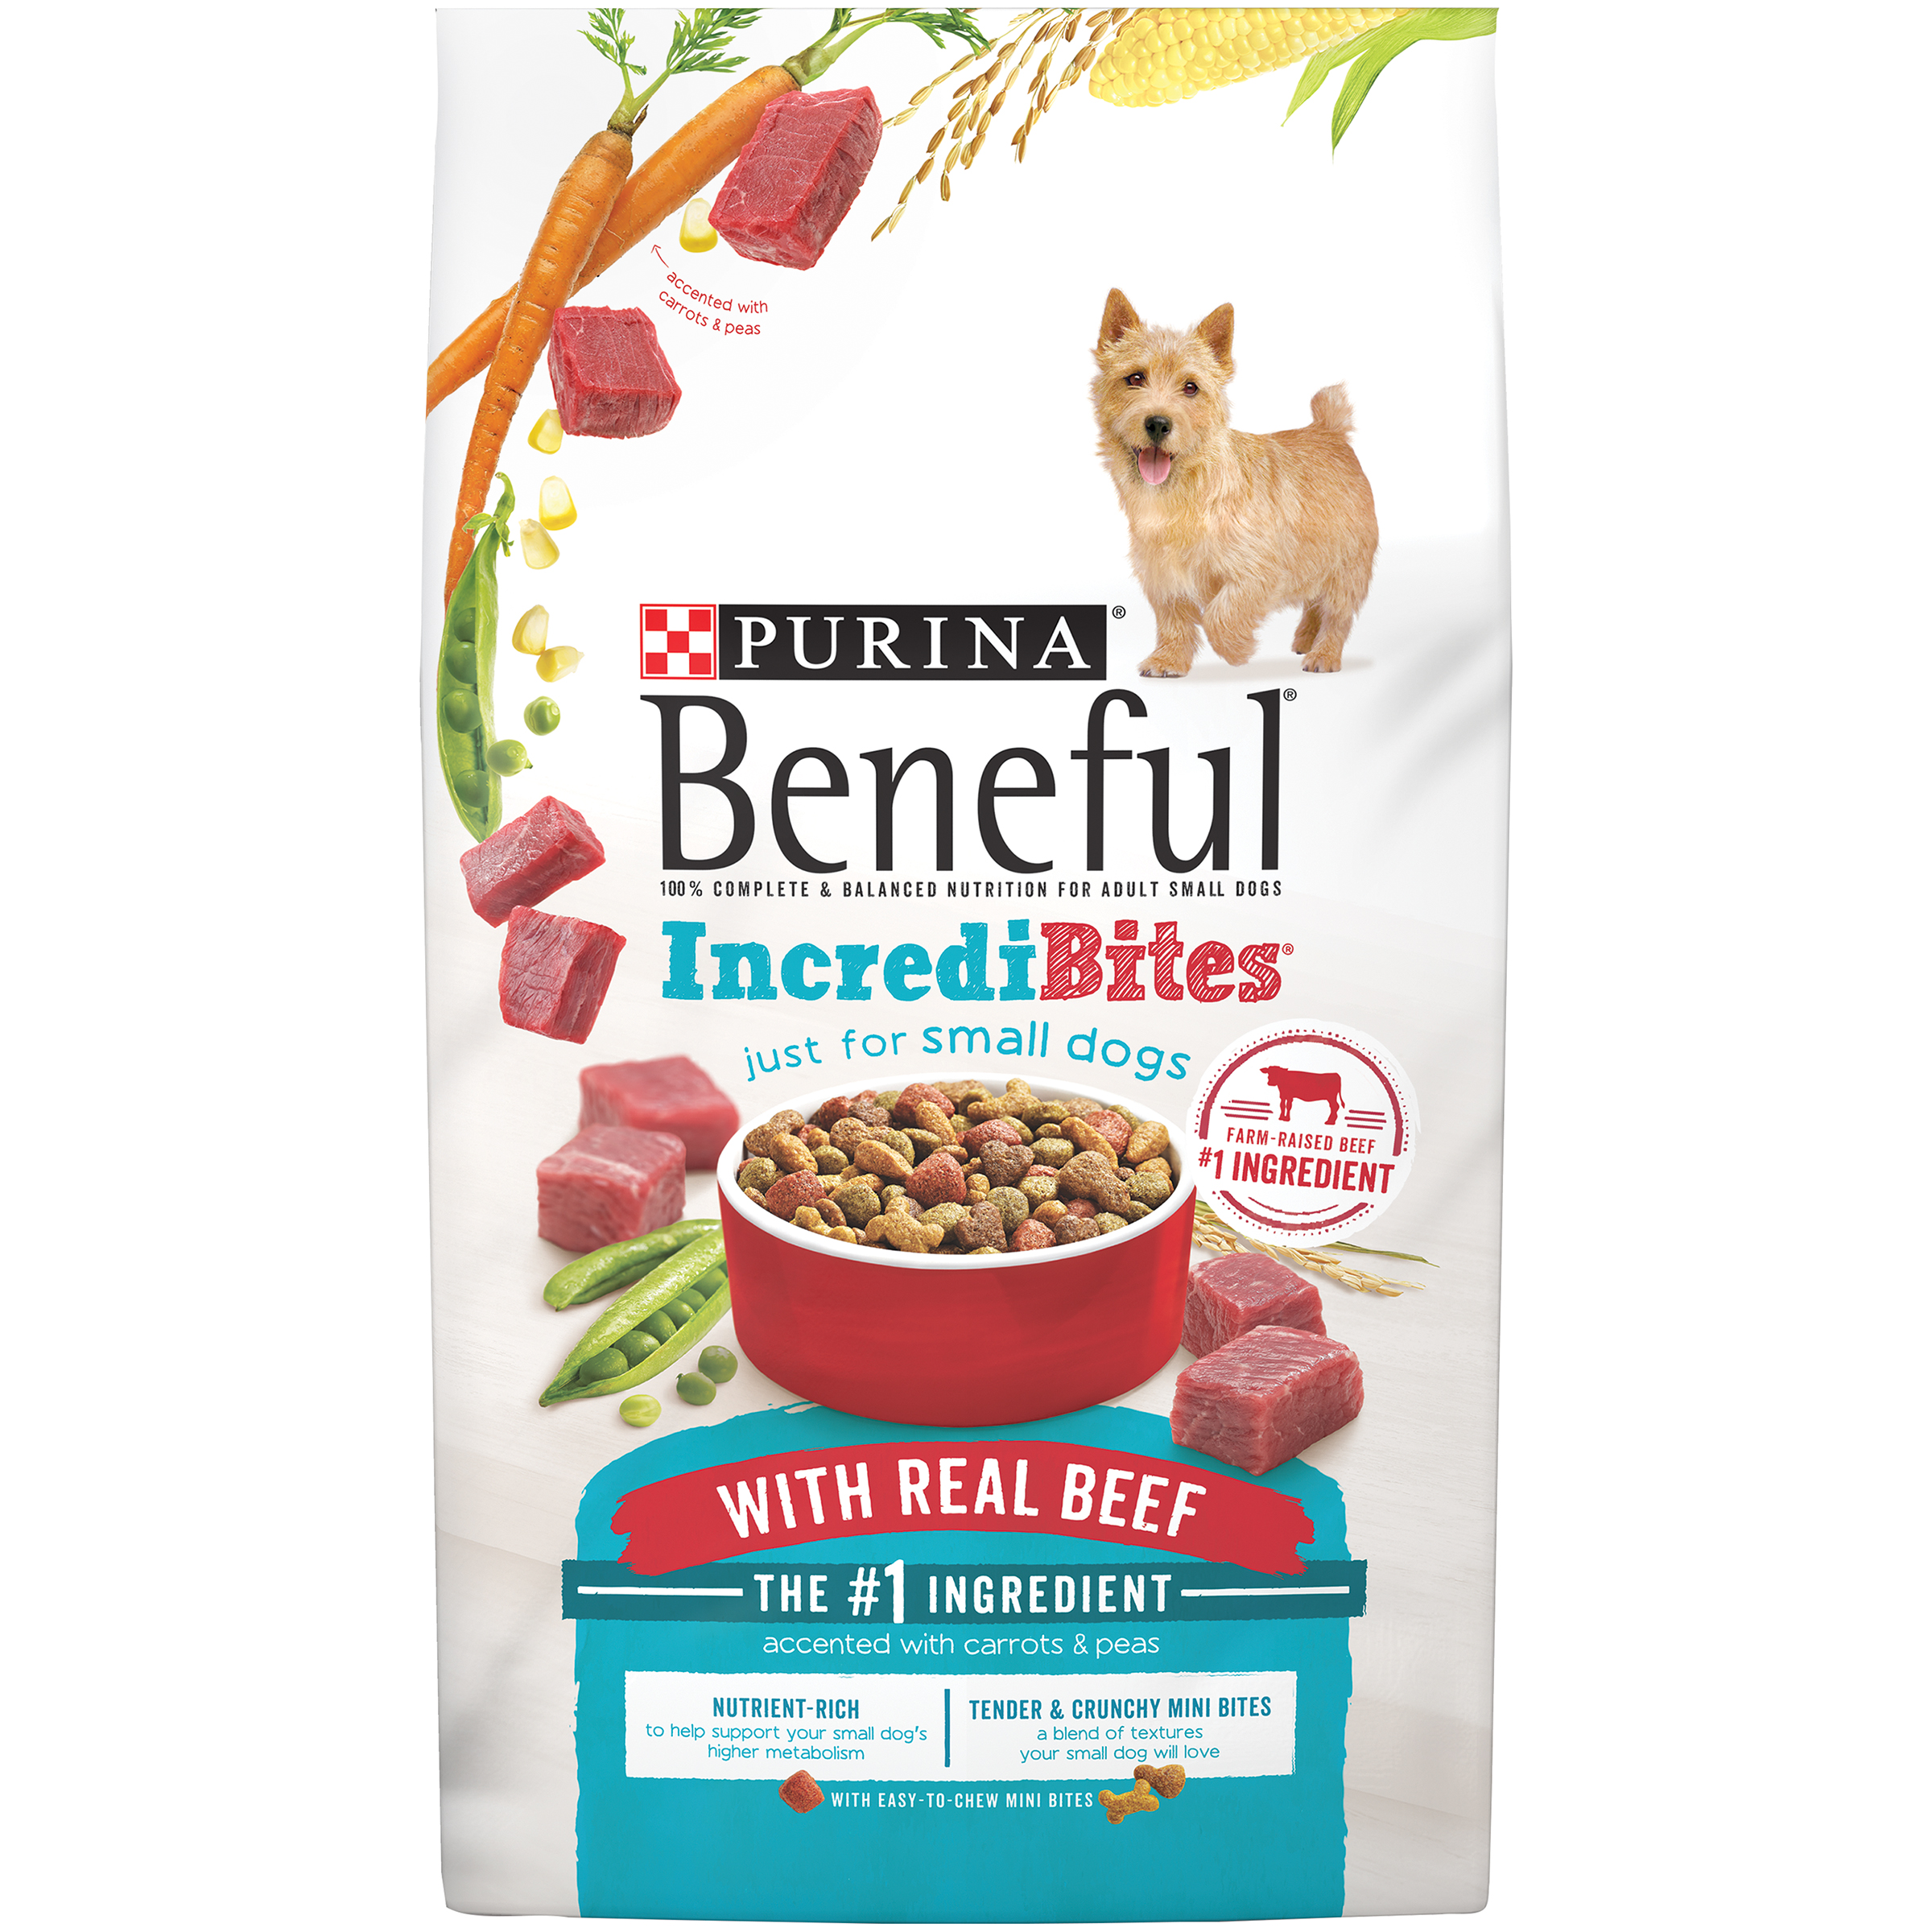 Claim: Purina&#;s Beneful brand dog food is causing dogs to become ill and manytubes.mlen.